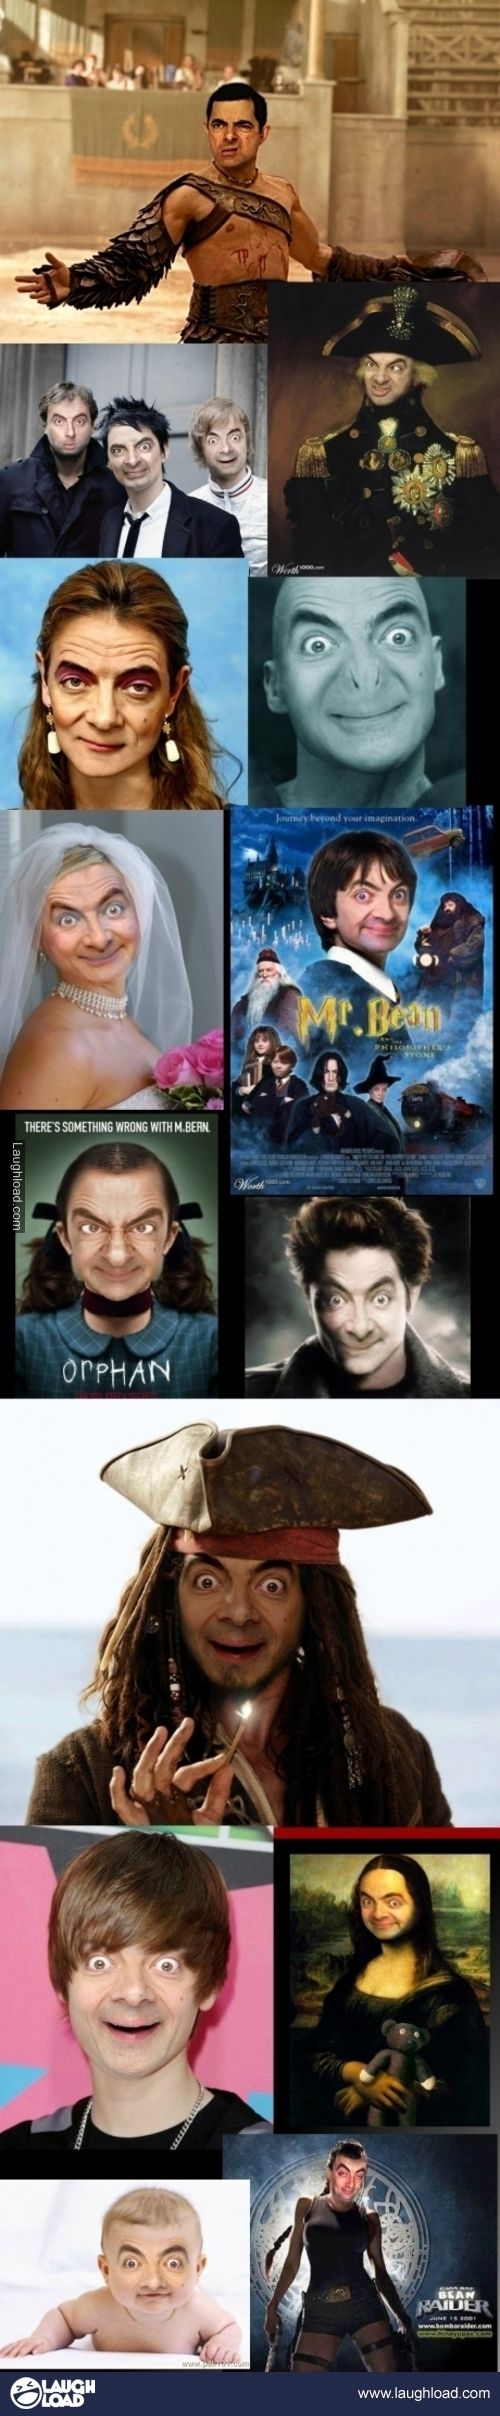 Just Mr Bean... I <3 Mr. Bean <3... I repinned something like this before lol